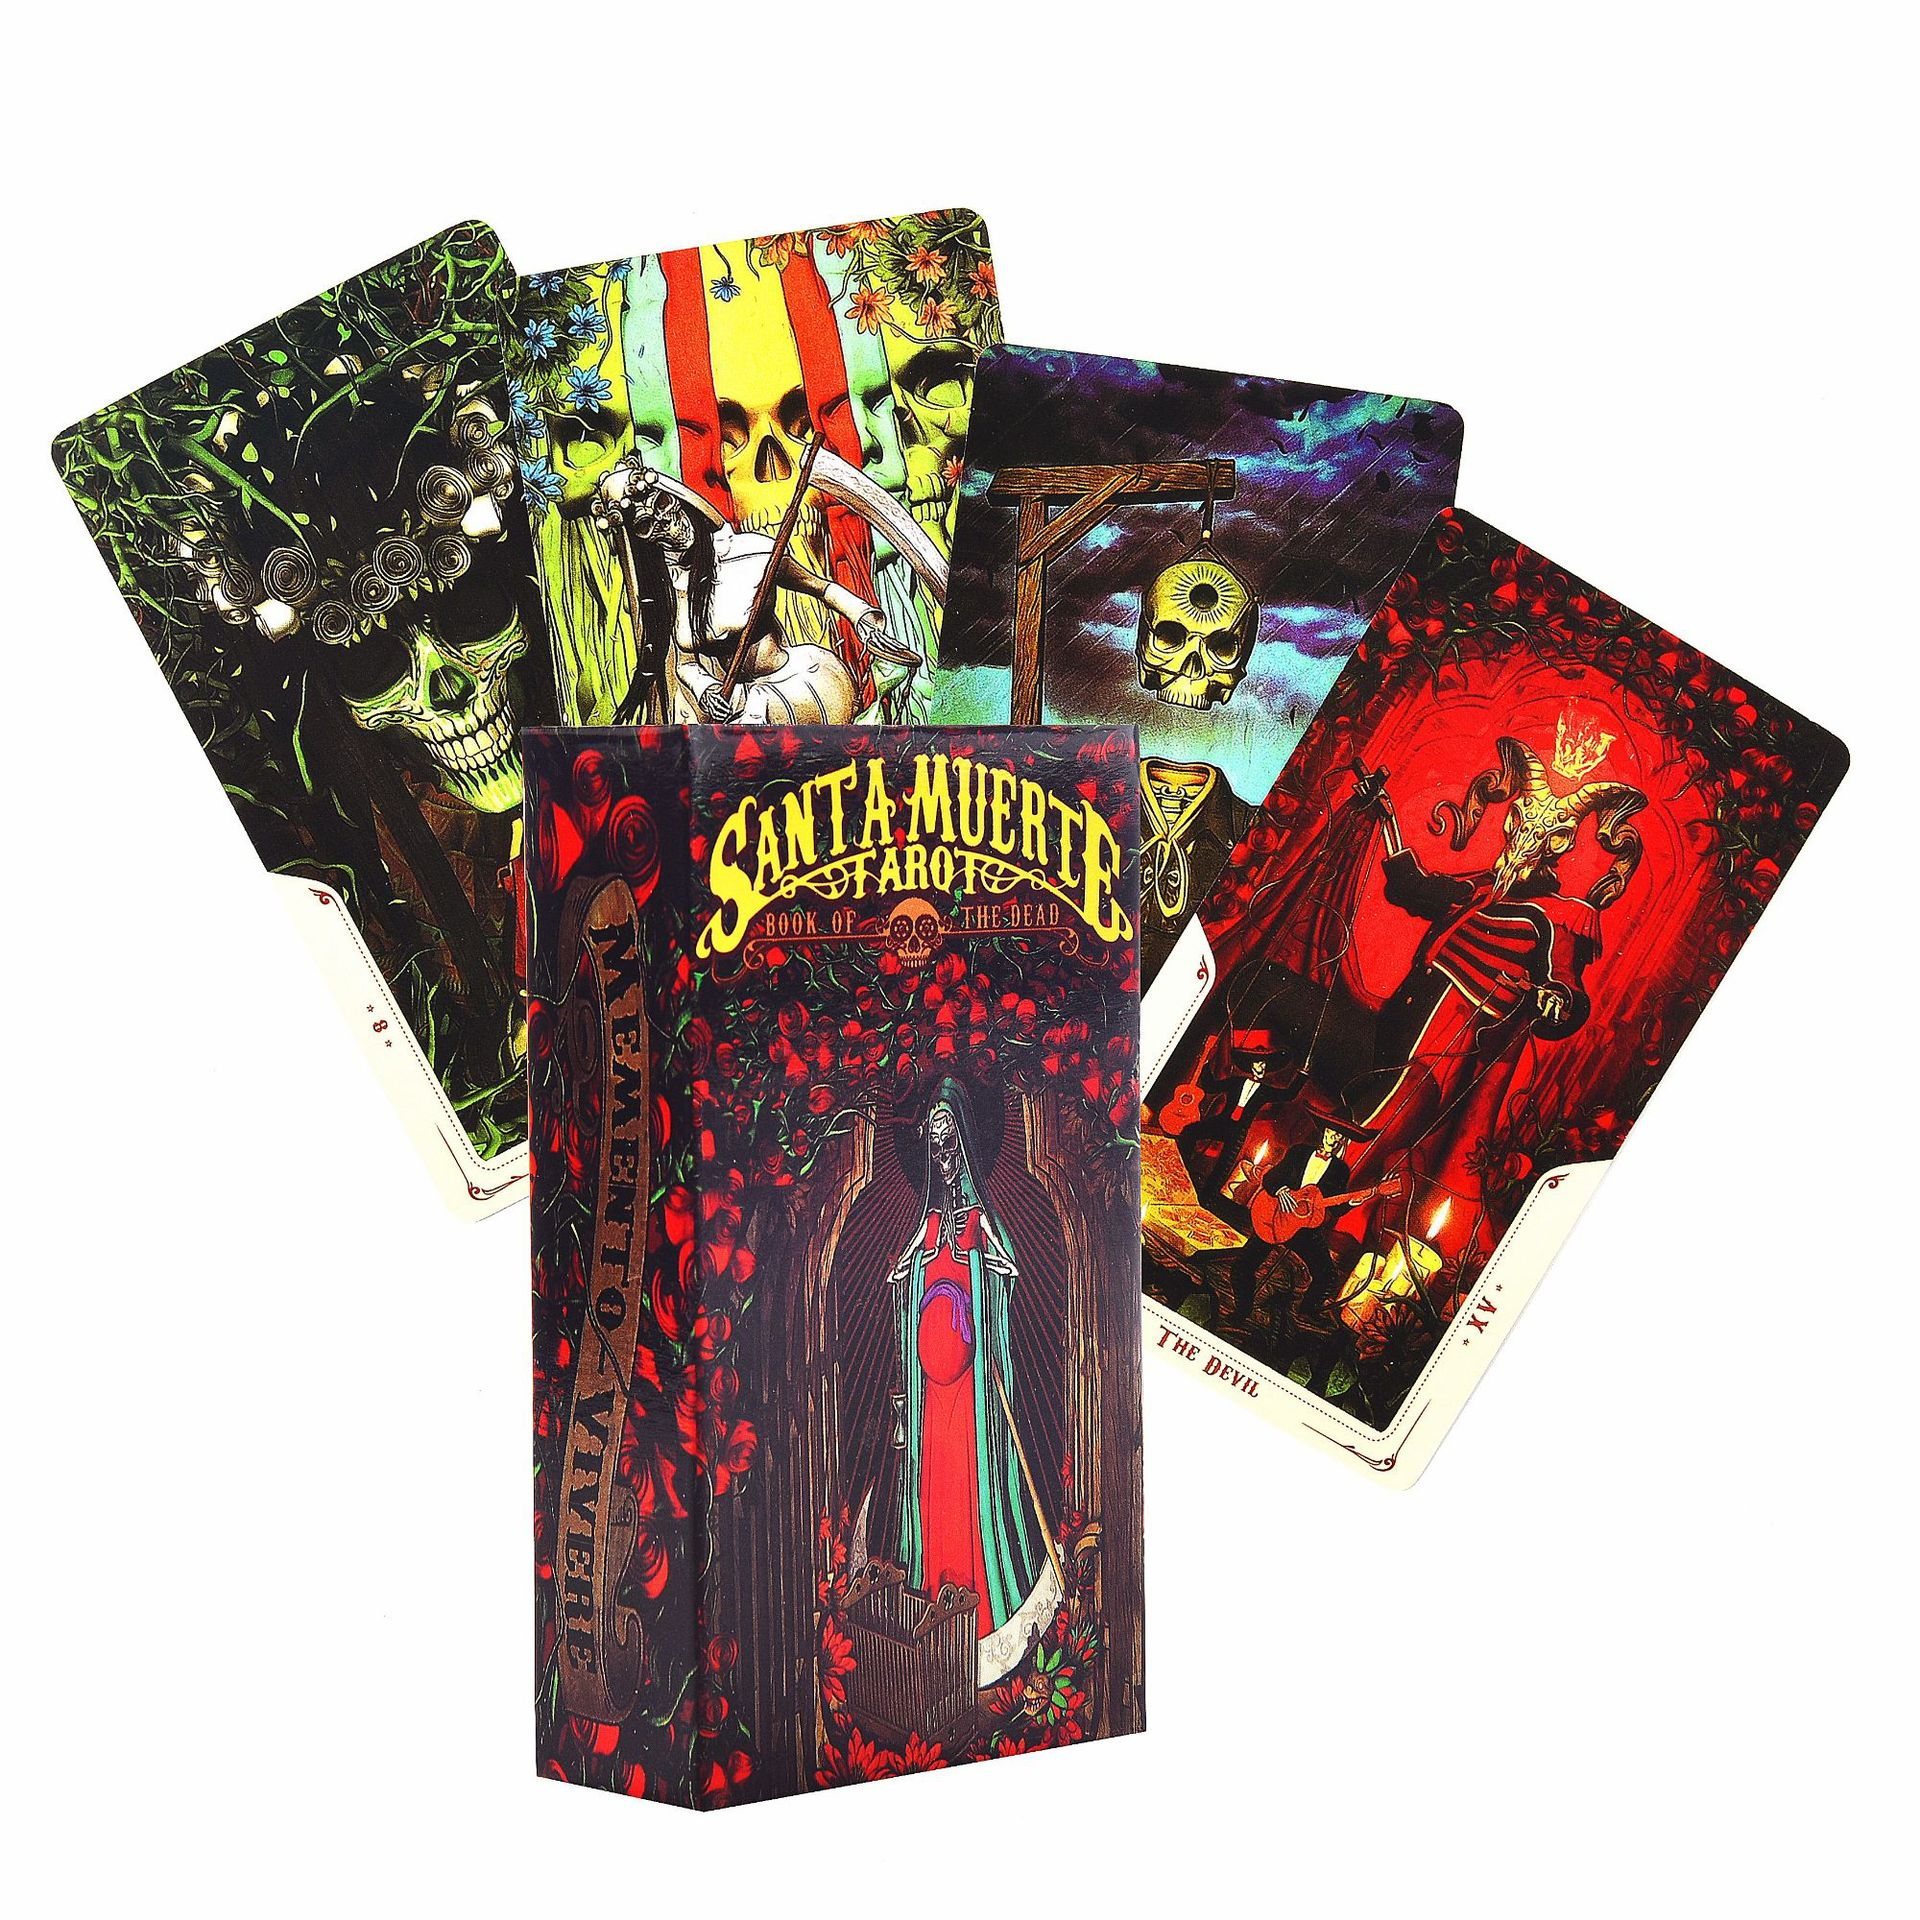 Tarot Cards Box Santa Muerte Tarot Deck Table Board Game Cards Game English Cards For Party Entertainment Games Playing Cards